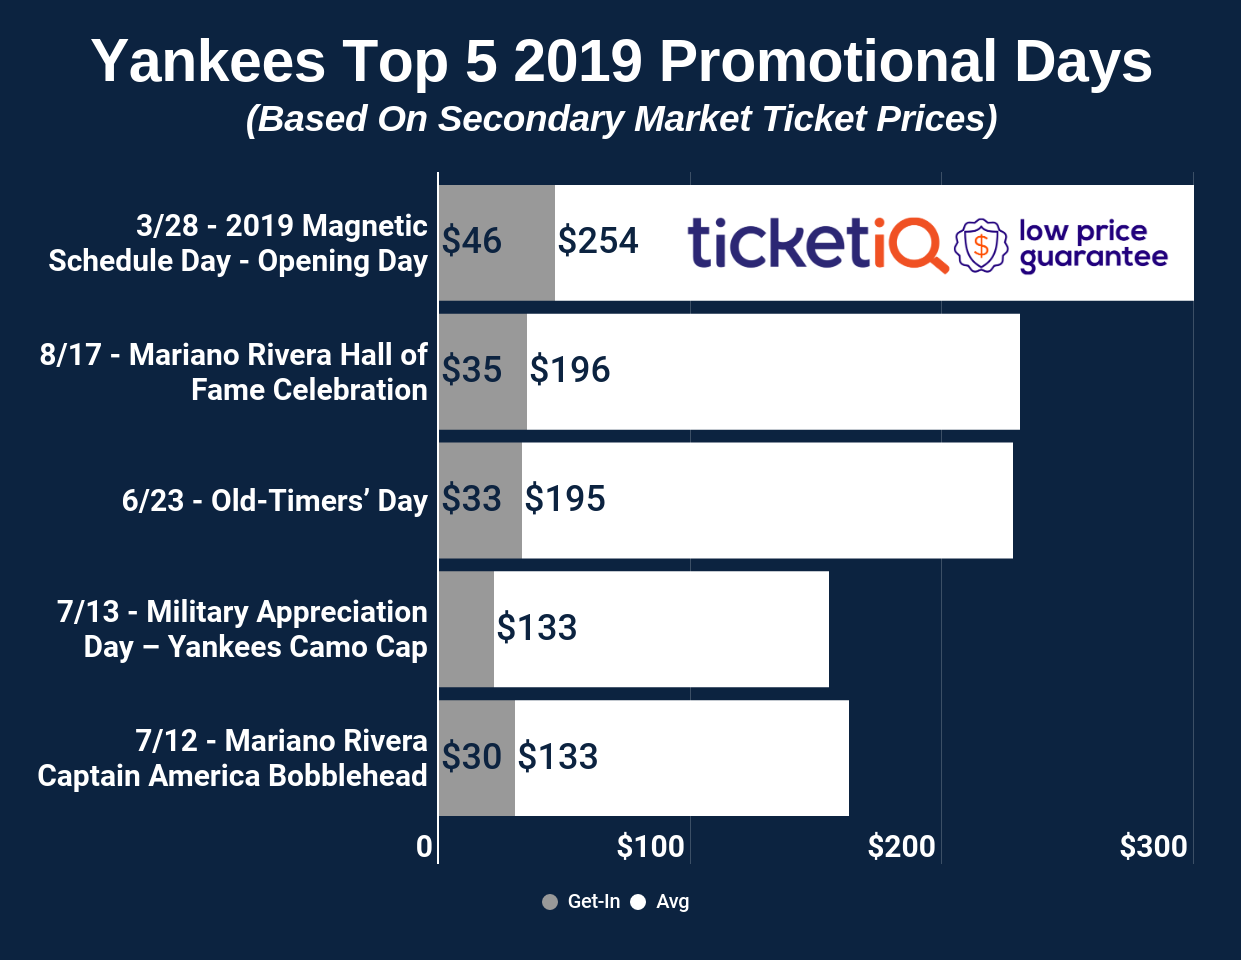 graphic relating to Astros Schedule Printable named 2019 Fresh York Yankees Marketing Giveaway Plan